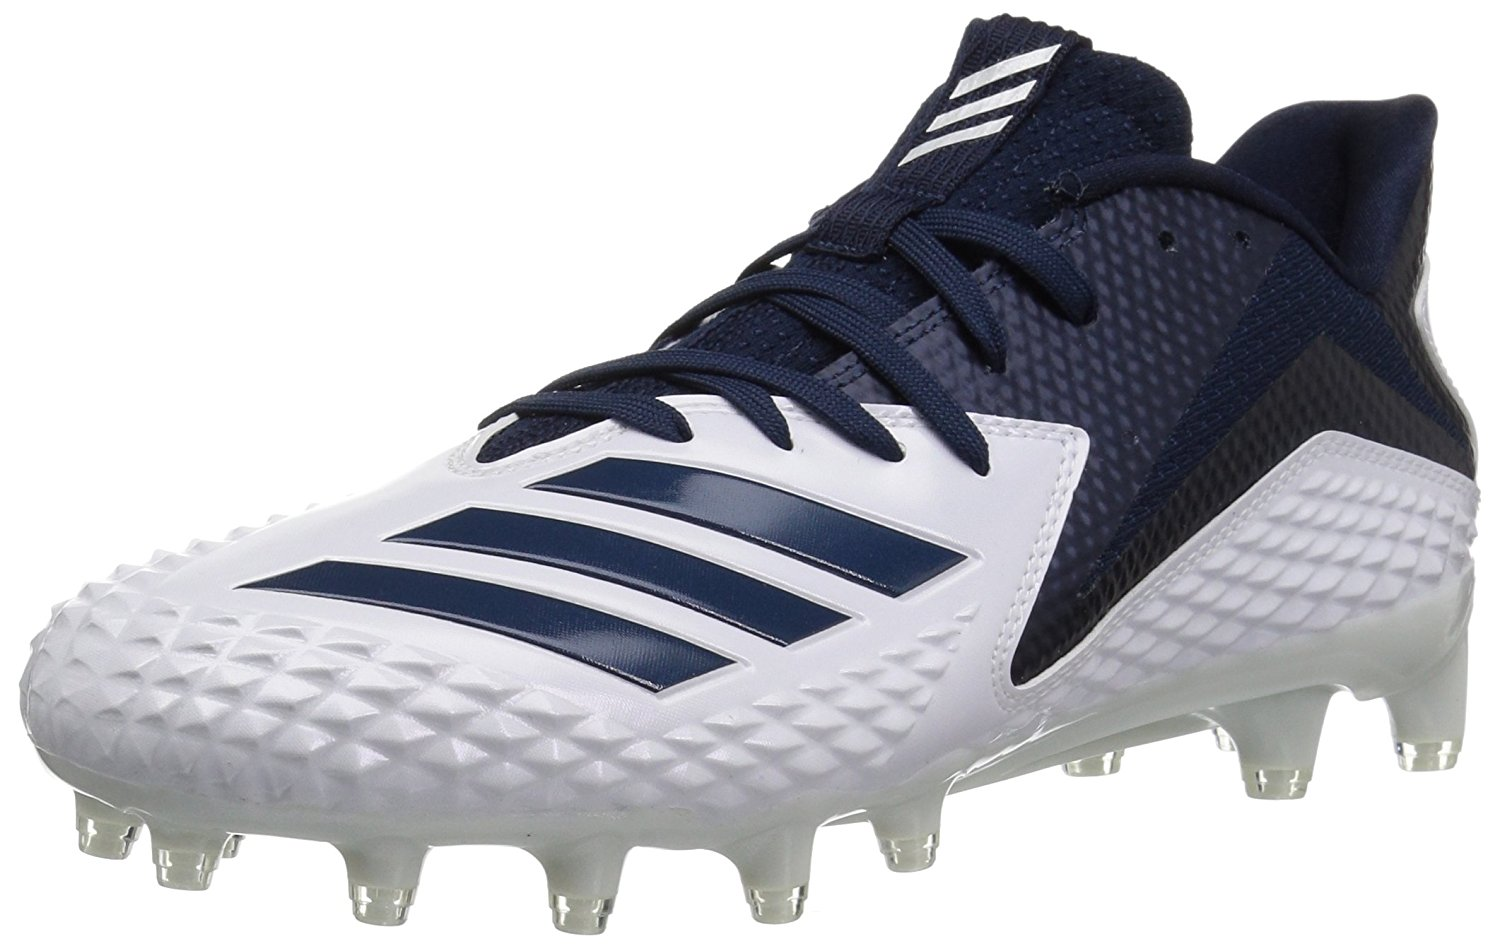 Adidas Mens Freak x Carbon Hight Top Lace Up Baseball Shoes